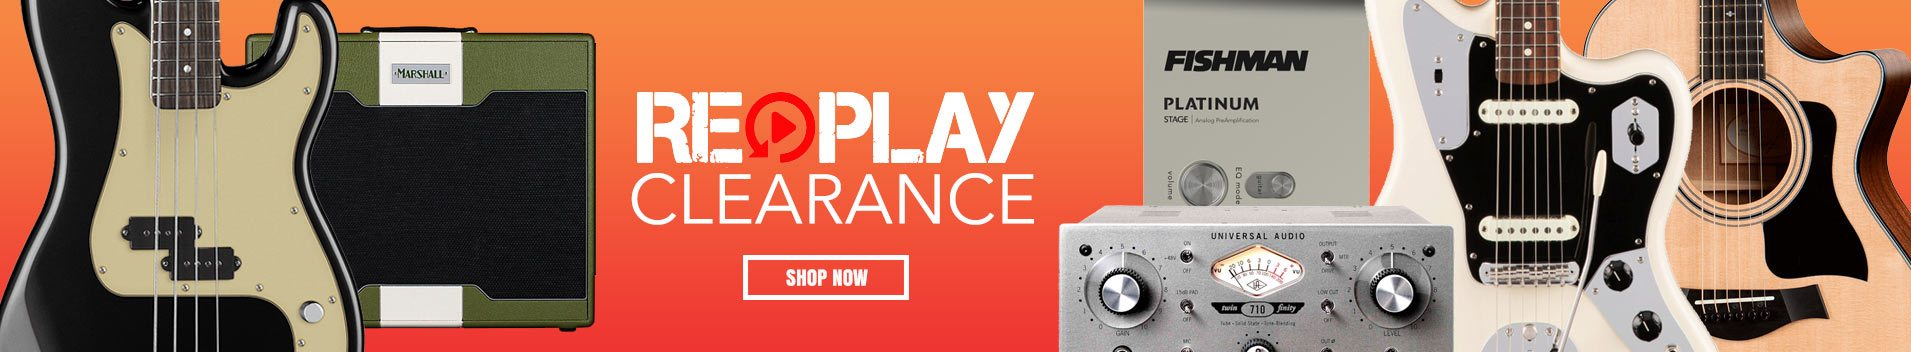 See Replay Events · Replay Guitar Exchange Clearance · Replay Gibson Guitars  ...